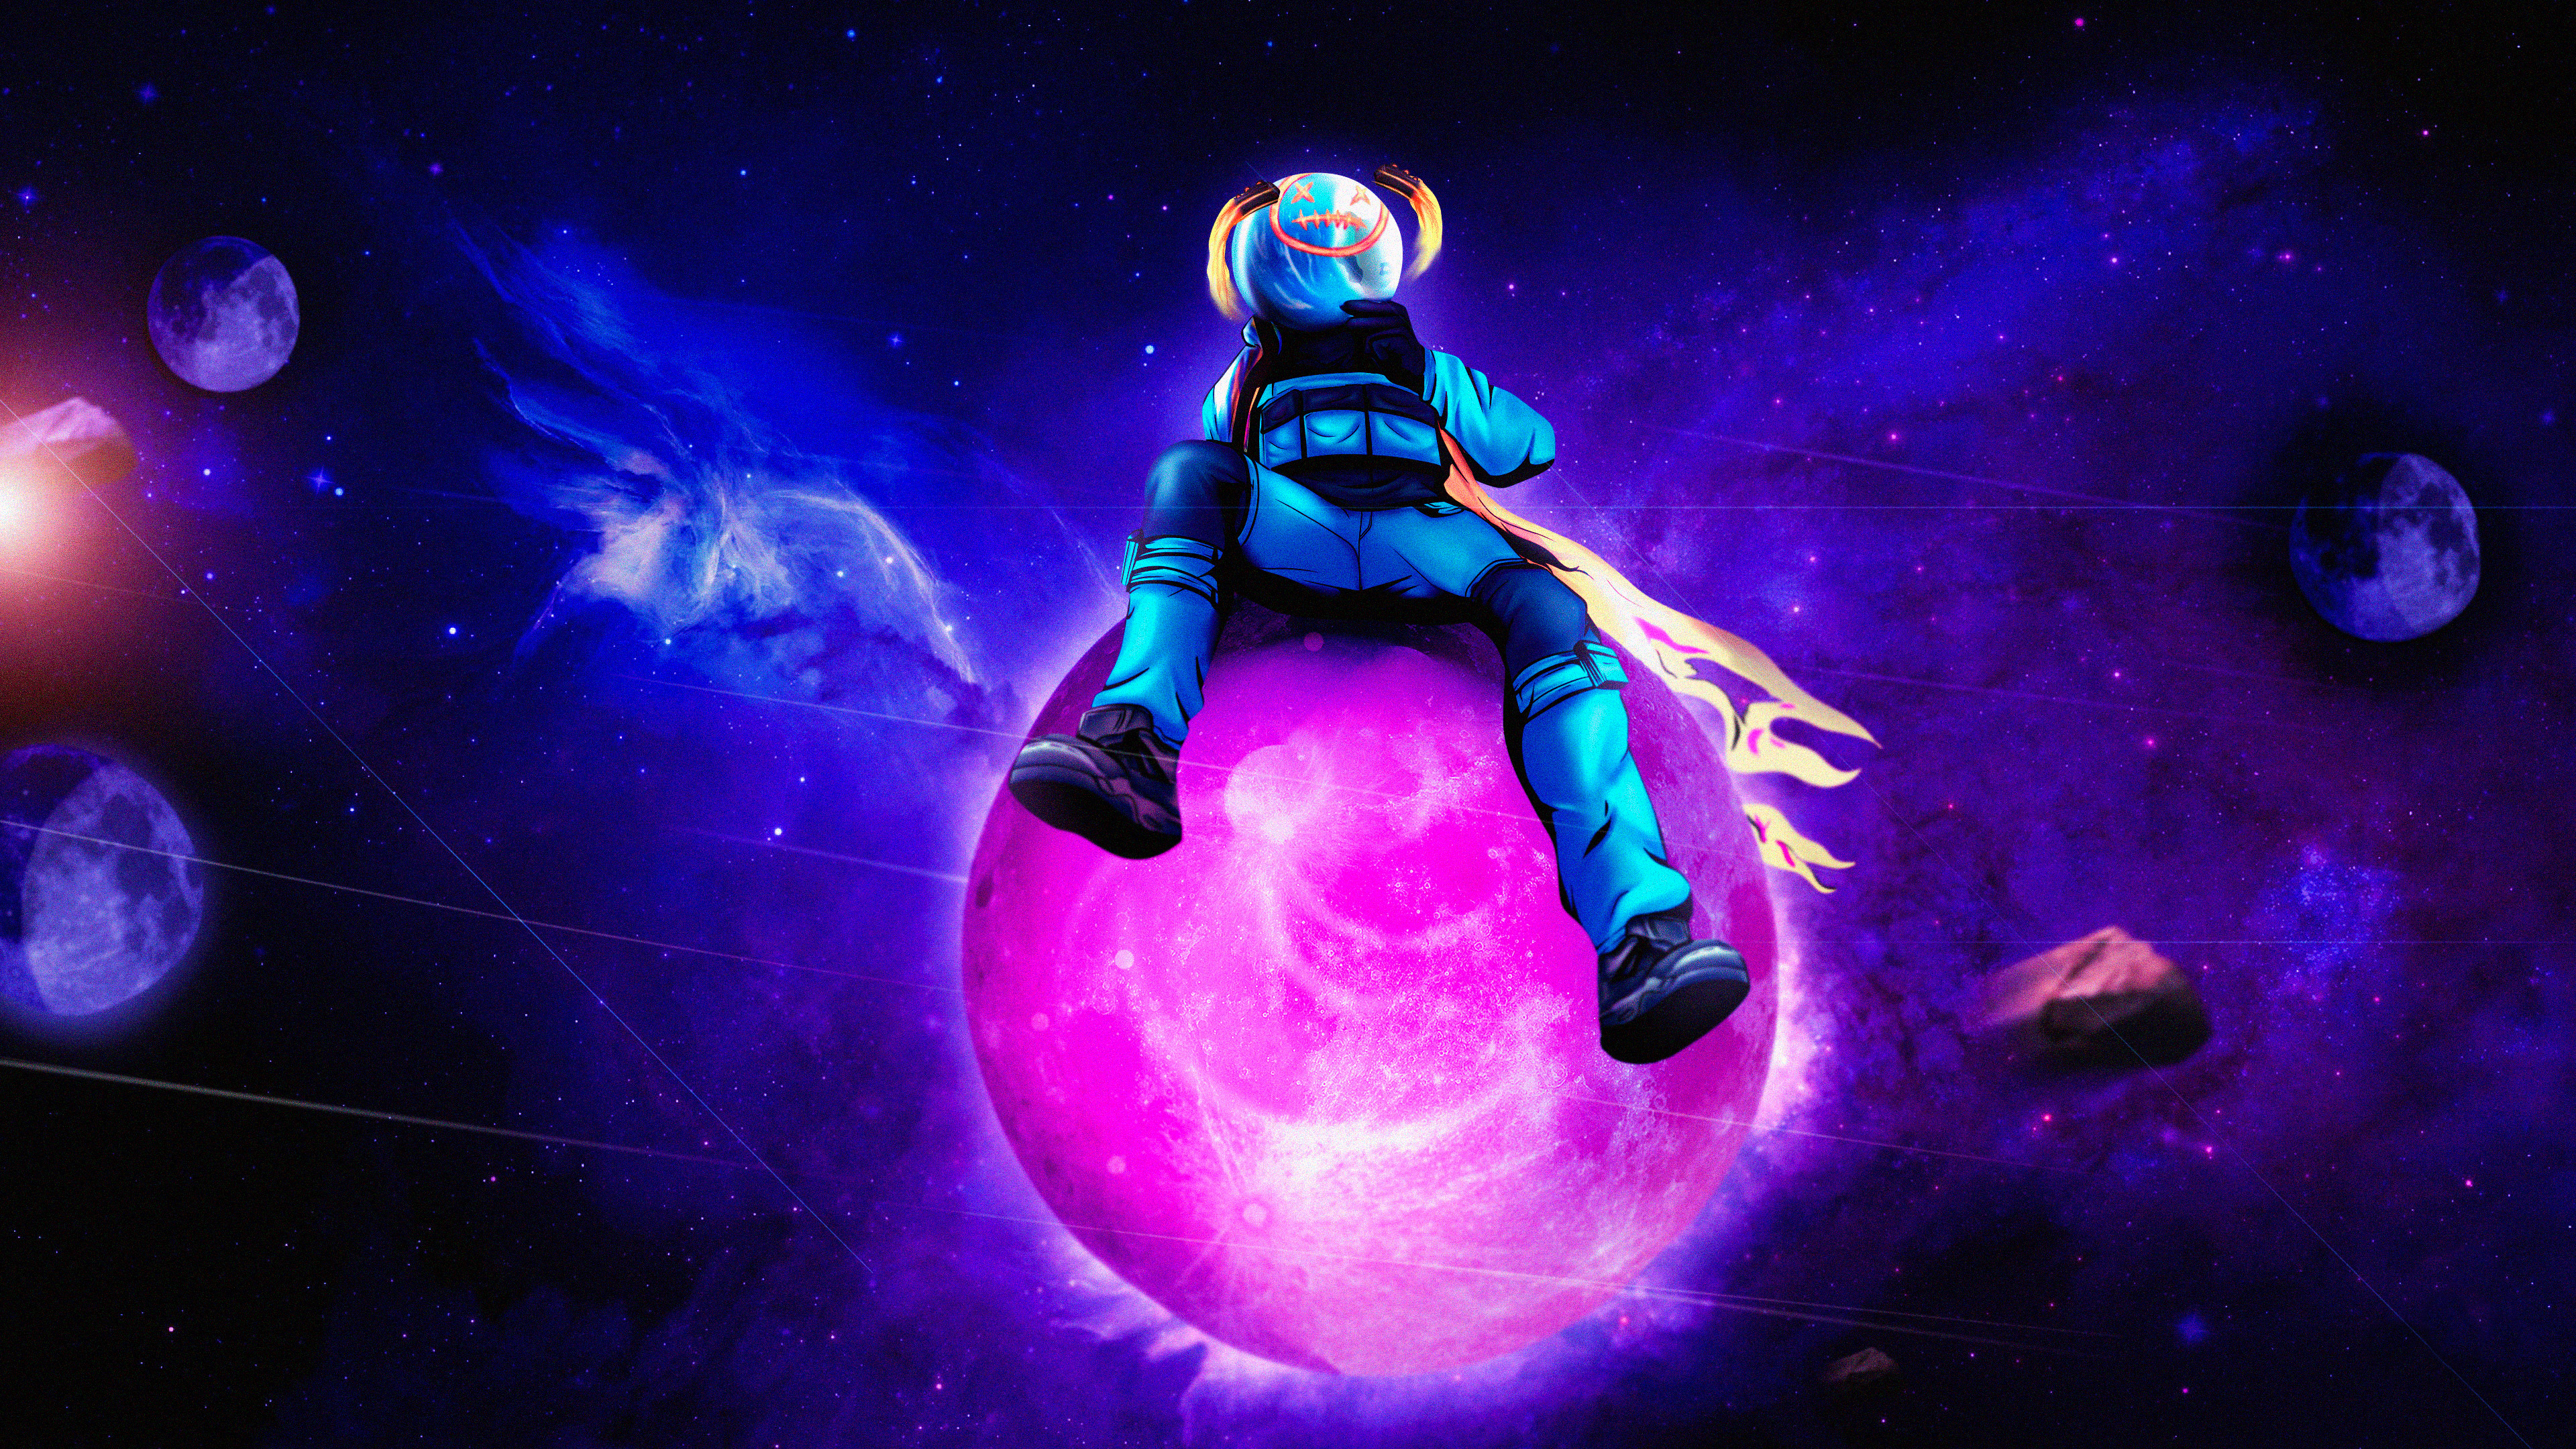 Astro Jack Fortnite Wallpaper Hd Games 4k Wallpapers Images Photos And Background